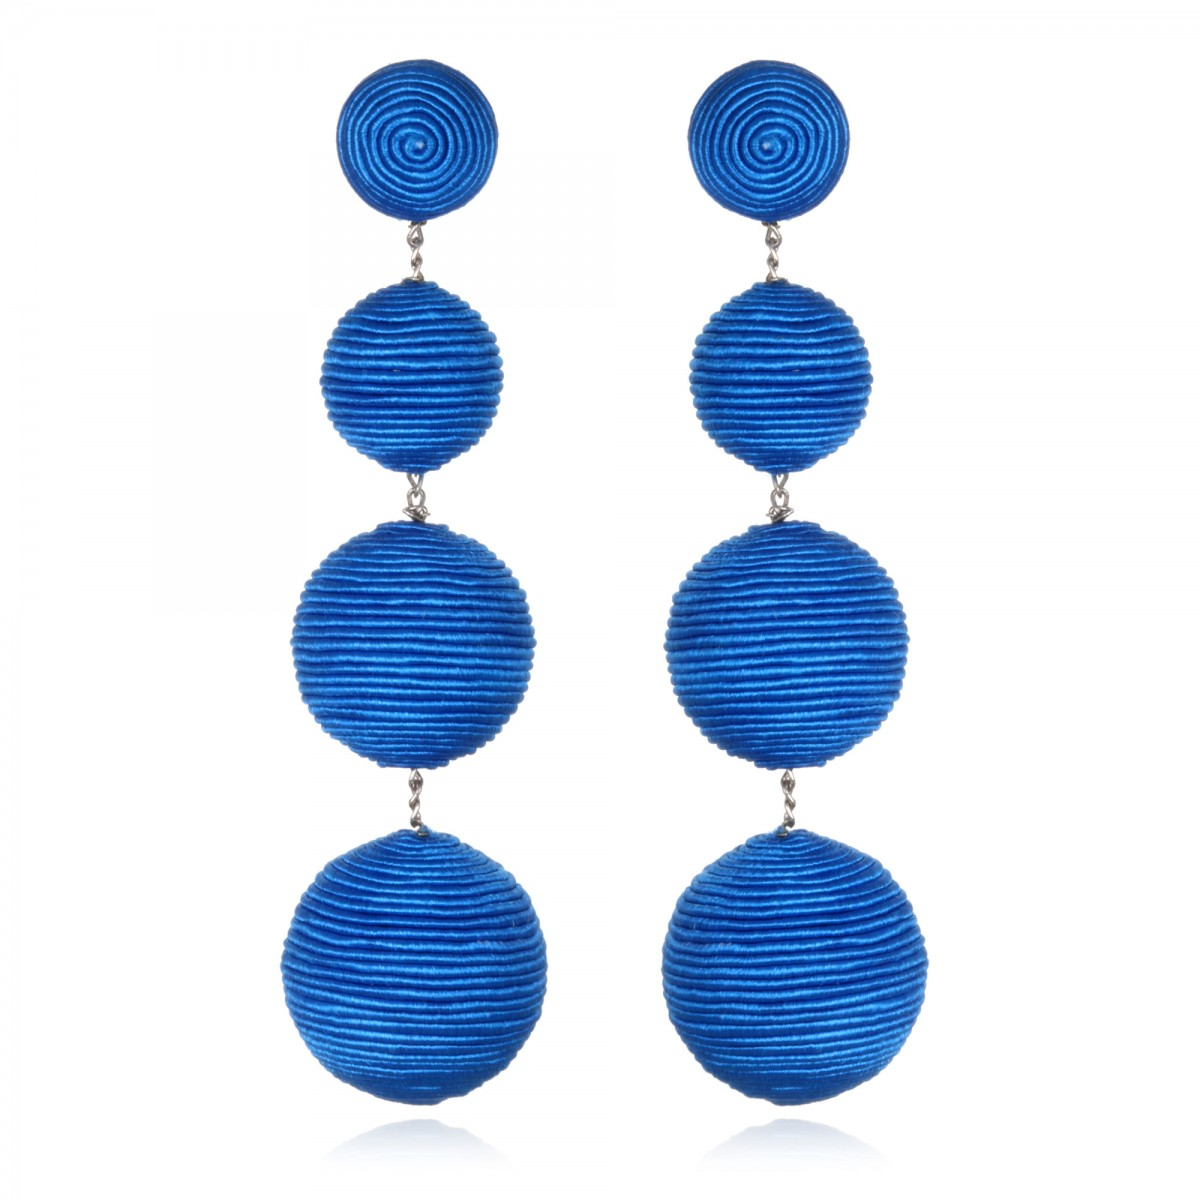 Blue Silk Gumball Earrings by SUZANNA DAI